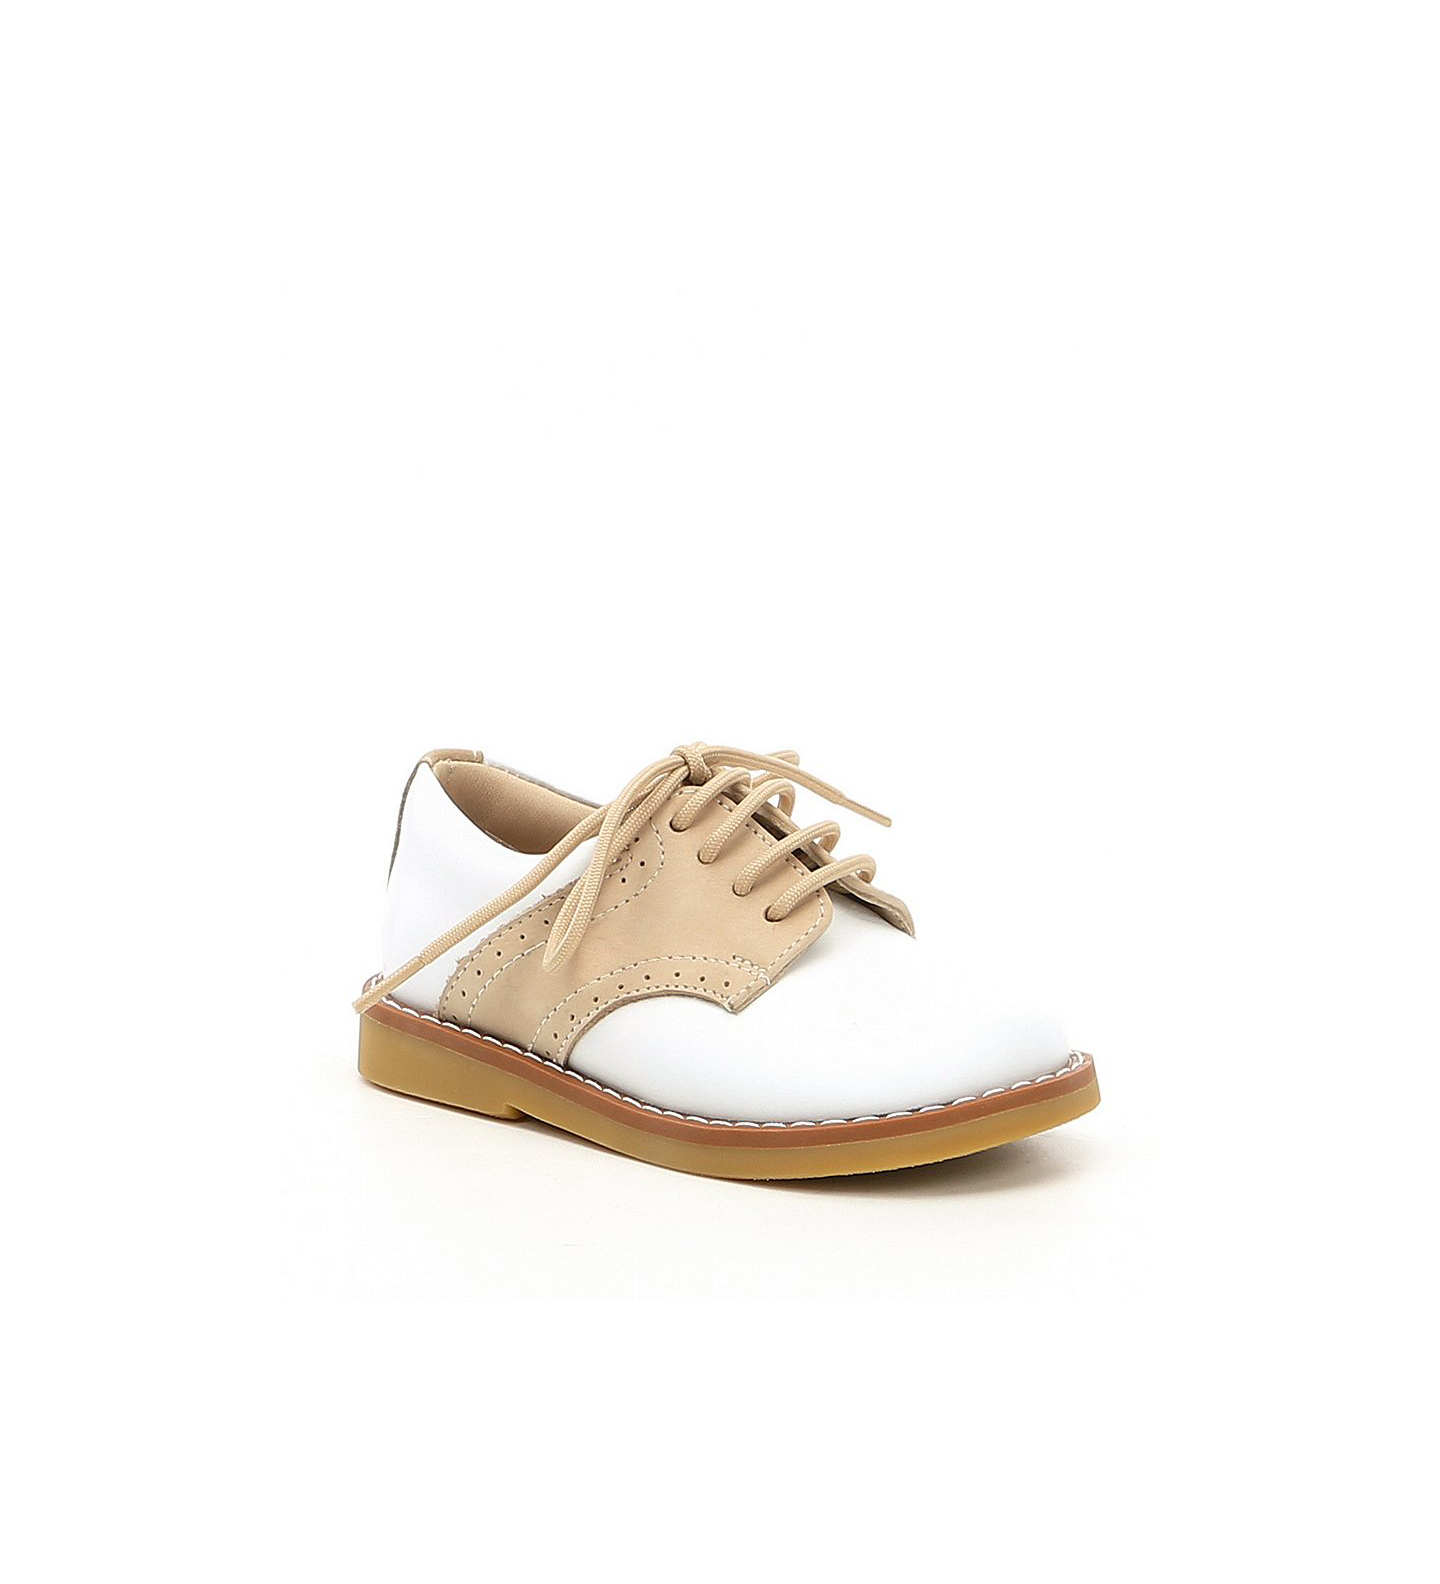 ring bearer shoes tan saddle oxfords